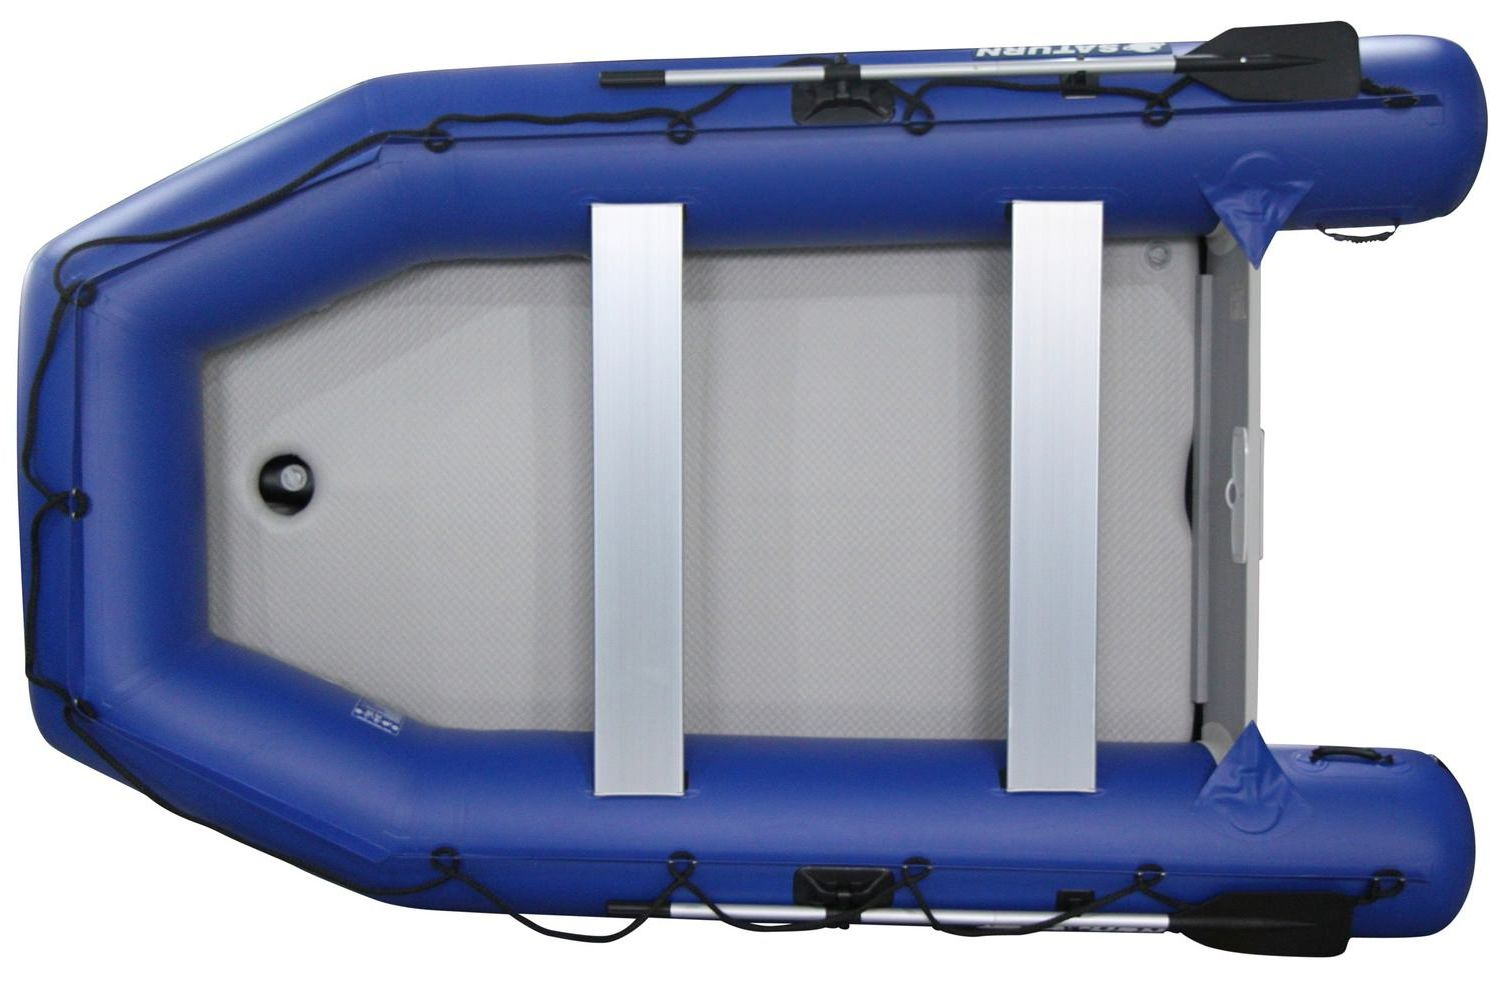 11' Saturn Wide Dinghy SD330W - Top View